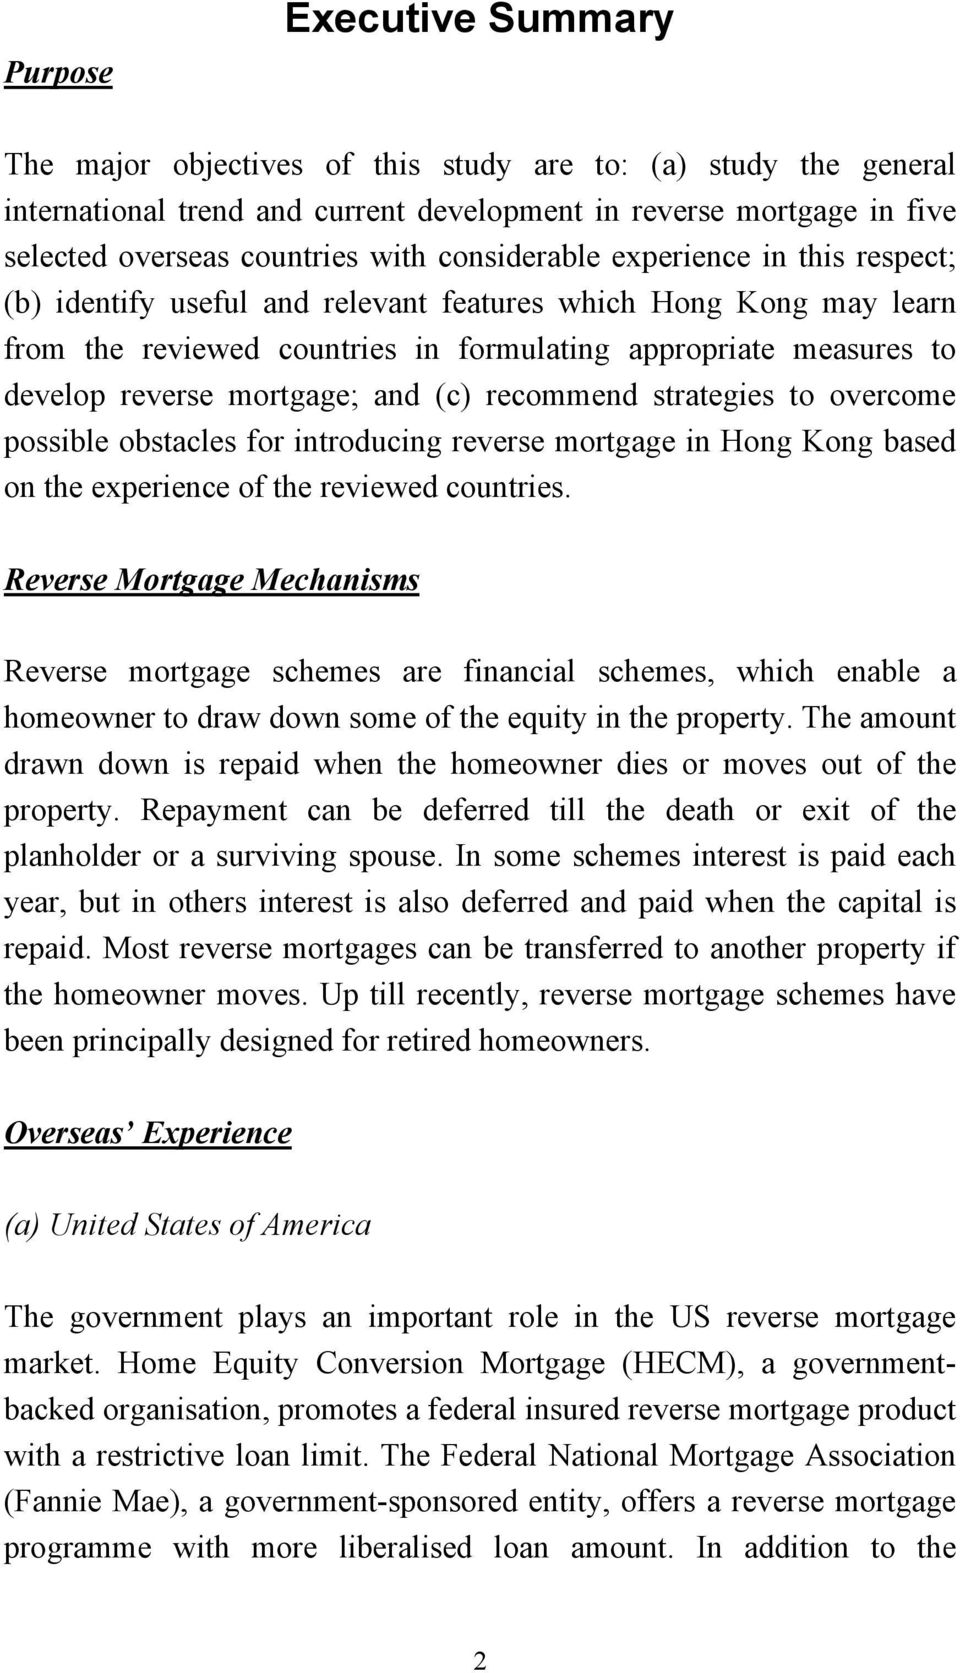 mortgage; and (c) recommend strategies to overcome possible obstacles for introducing reverse mortgage in Hong Kong based on the experience of the reviewed countries.